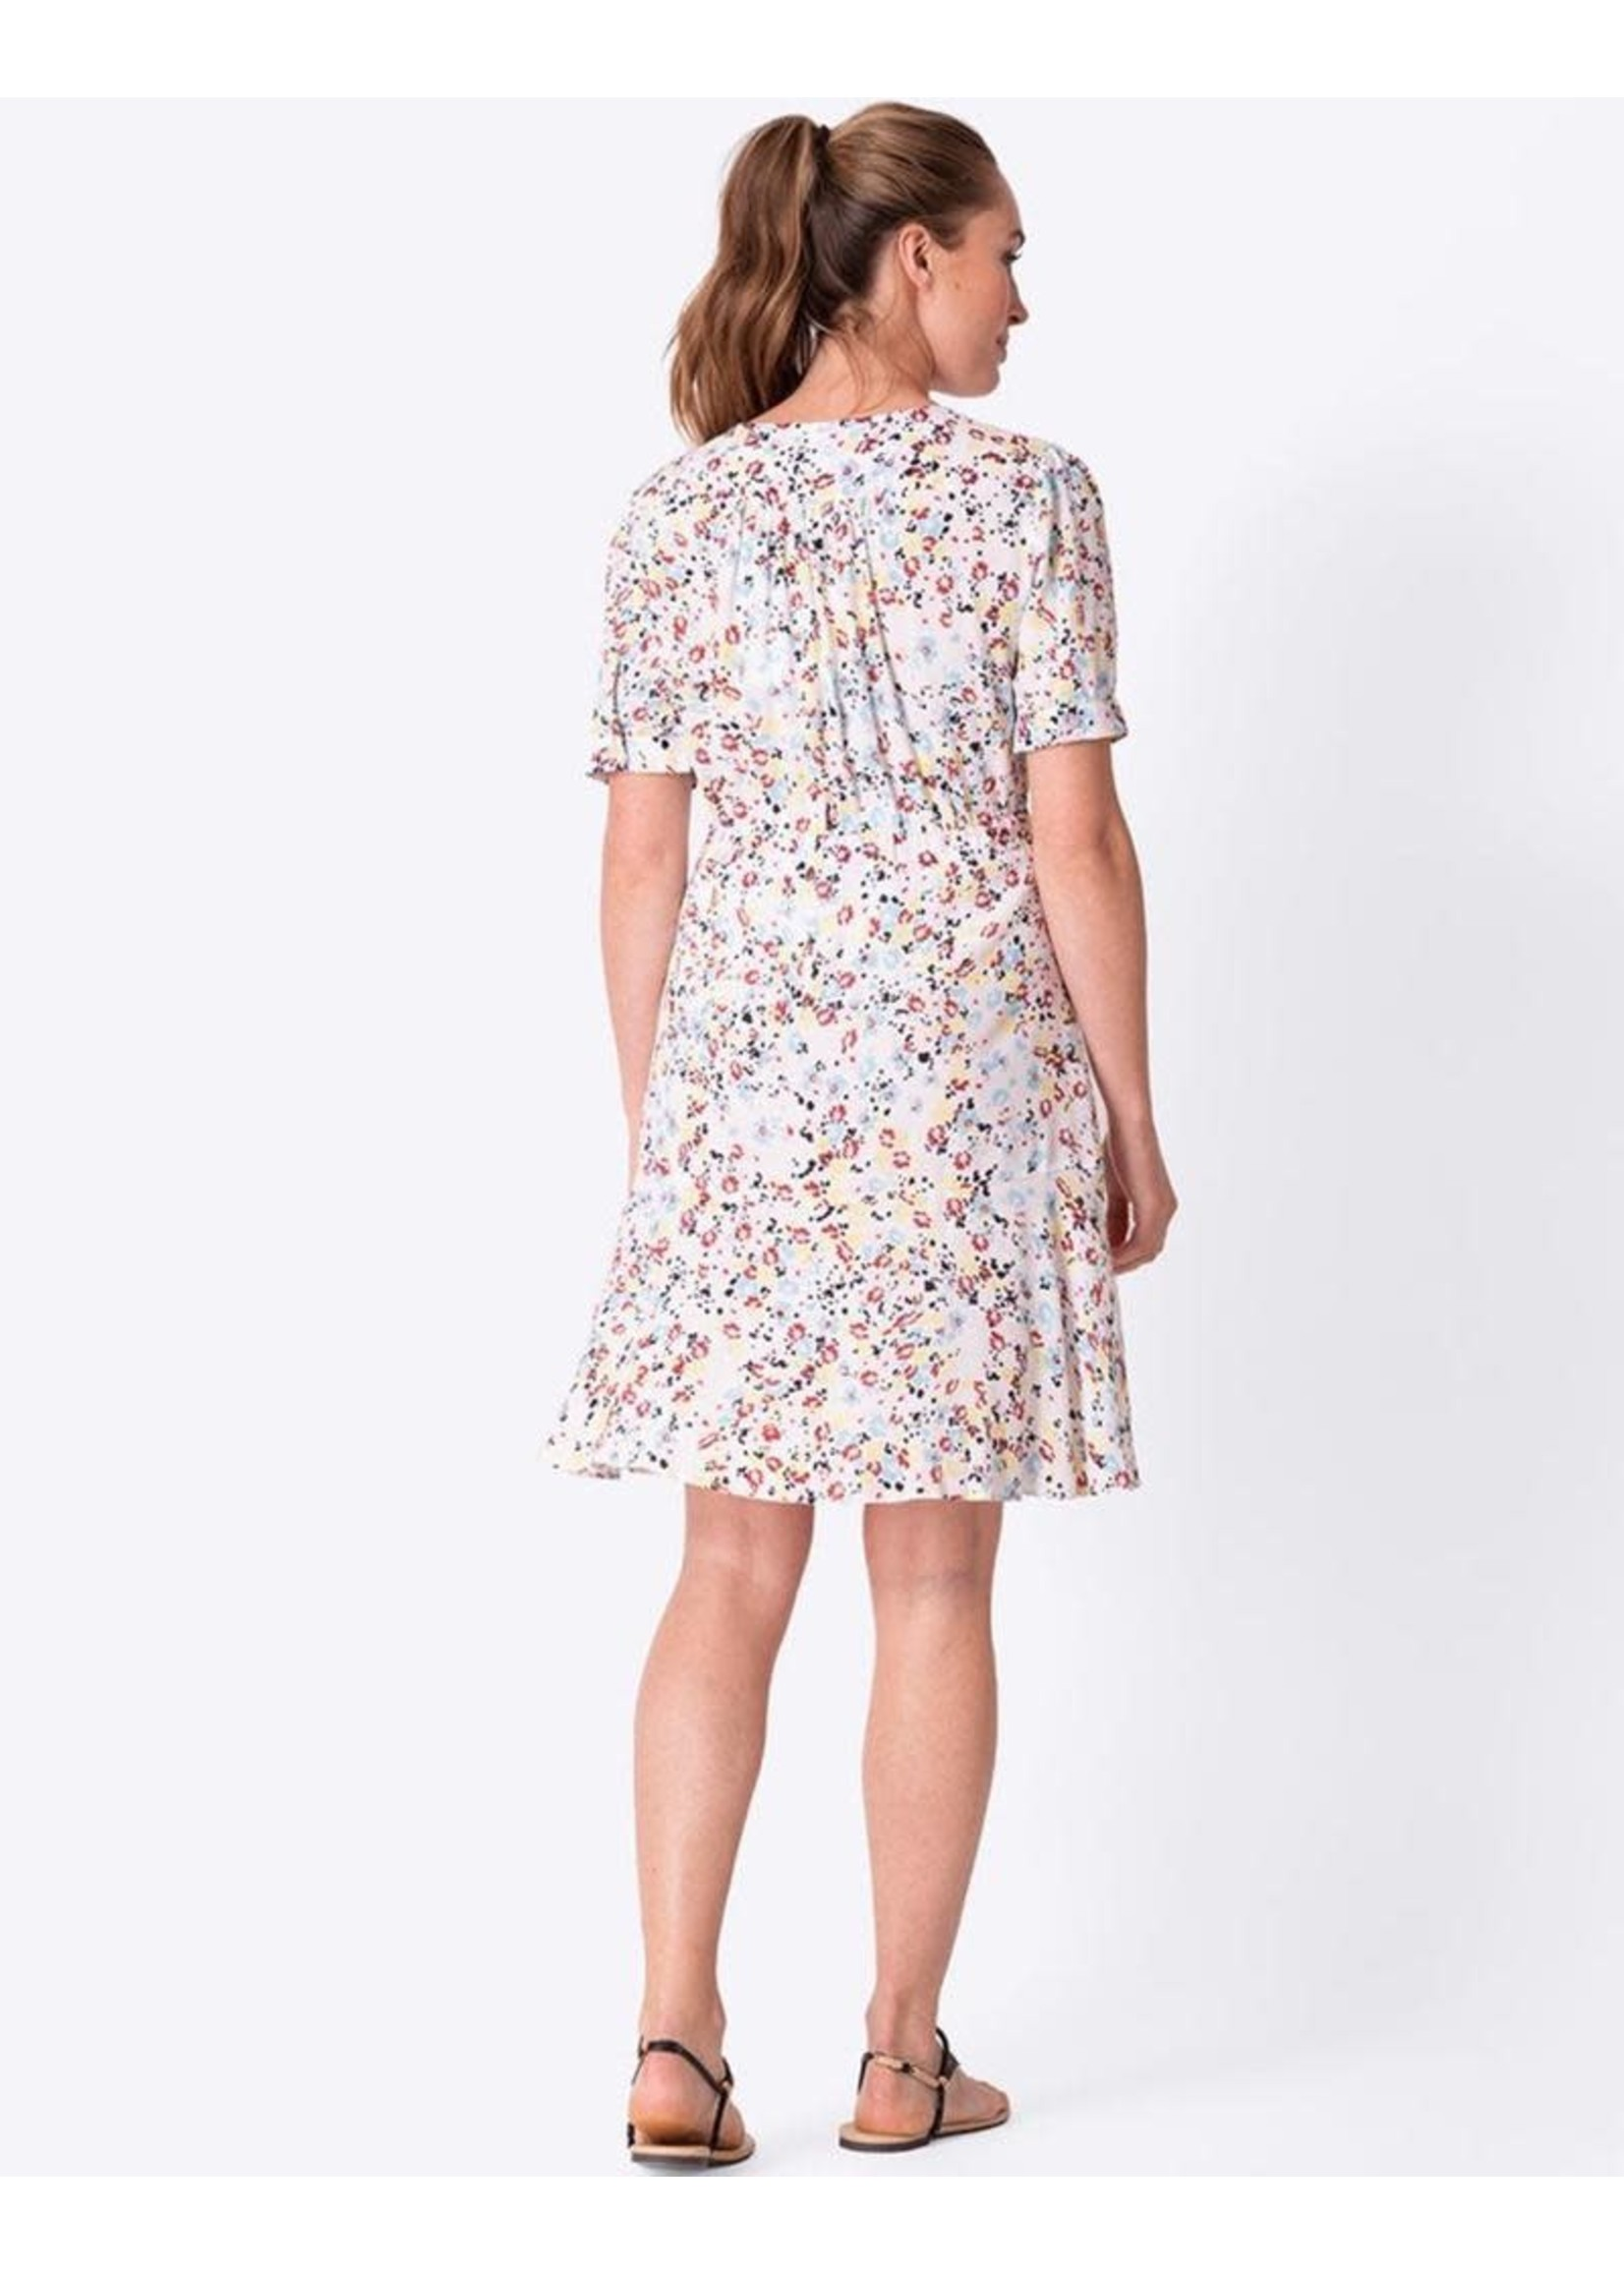 Seraphine Seraphine, Daffodil White Floral Front Tie Maternity Dress